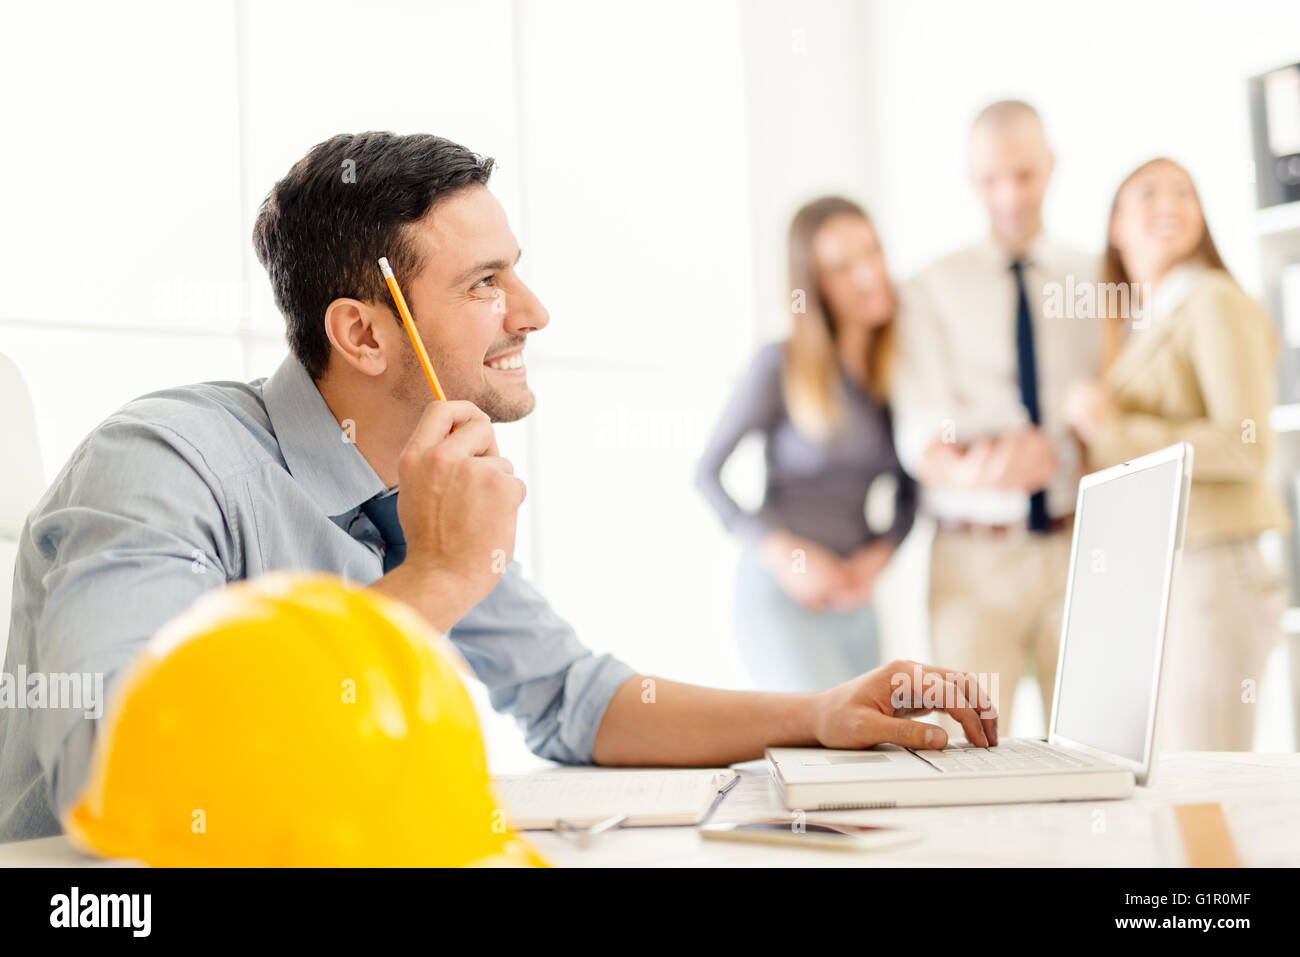 Young Construction Engineer - Stock Image